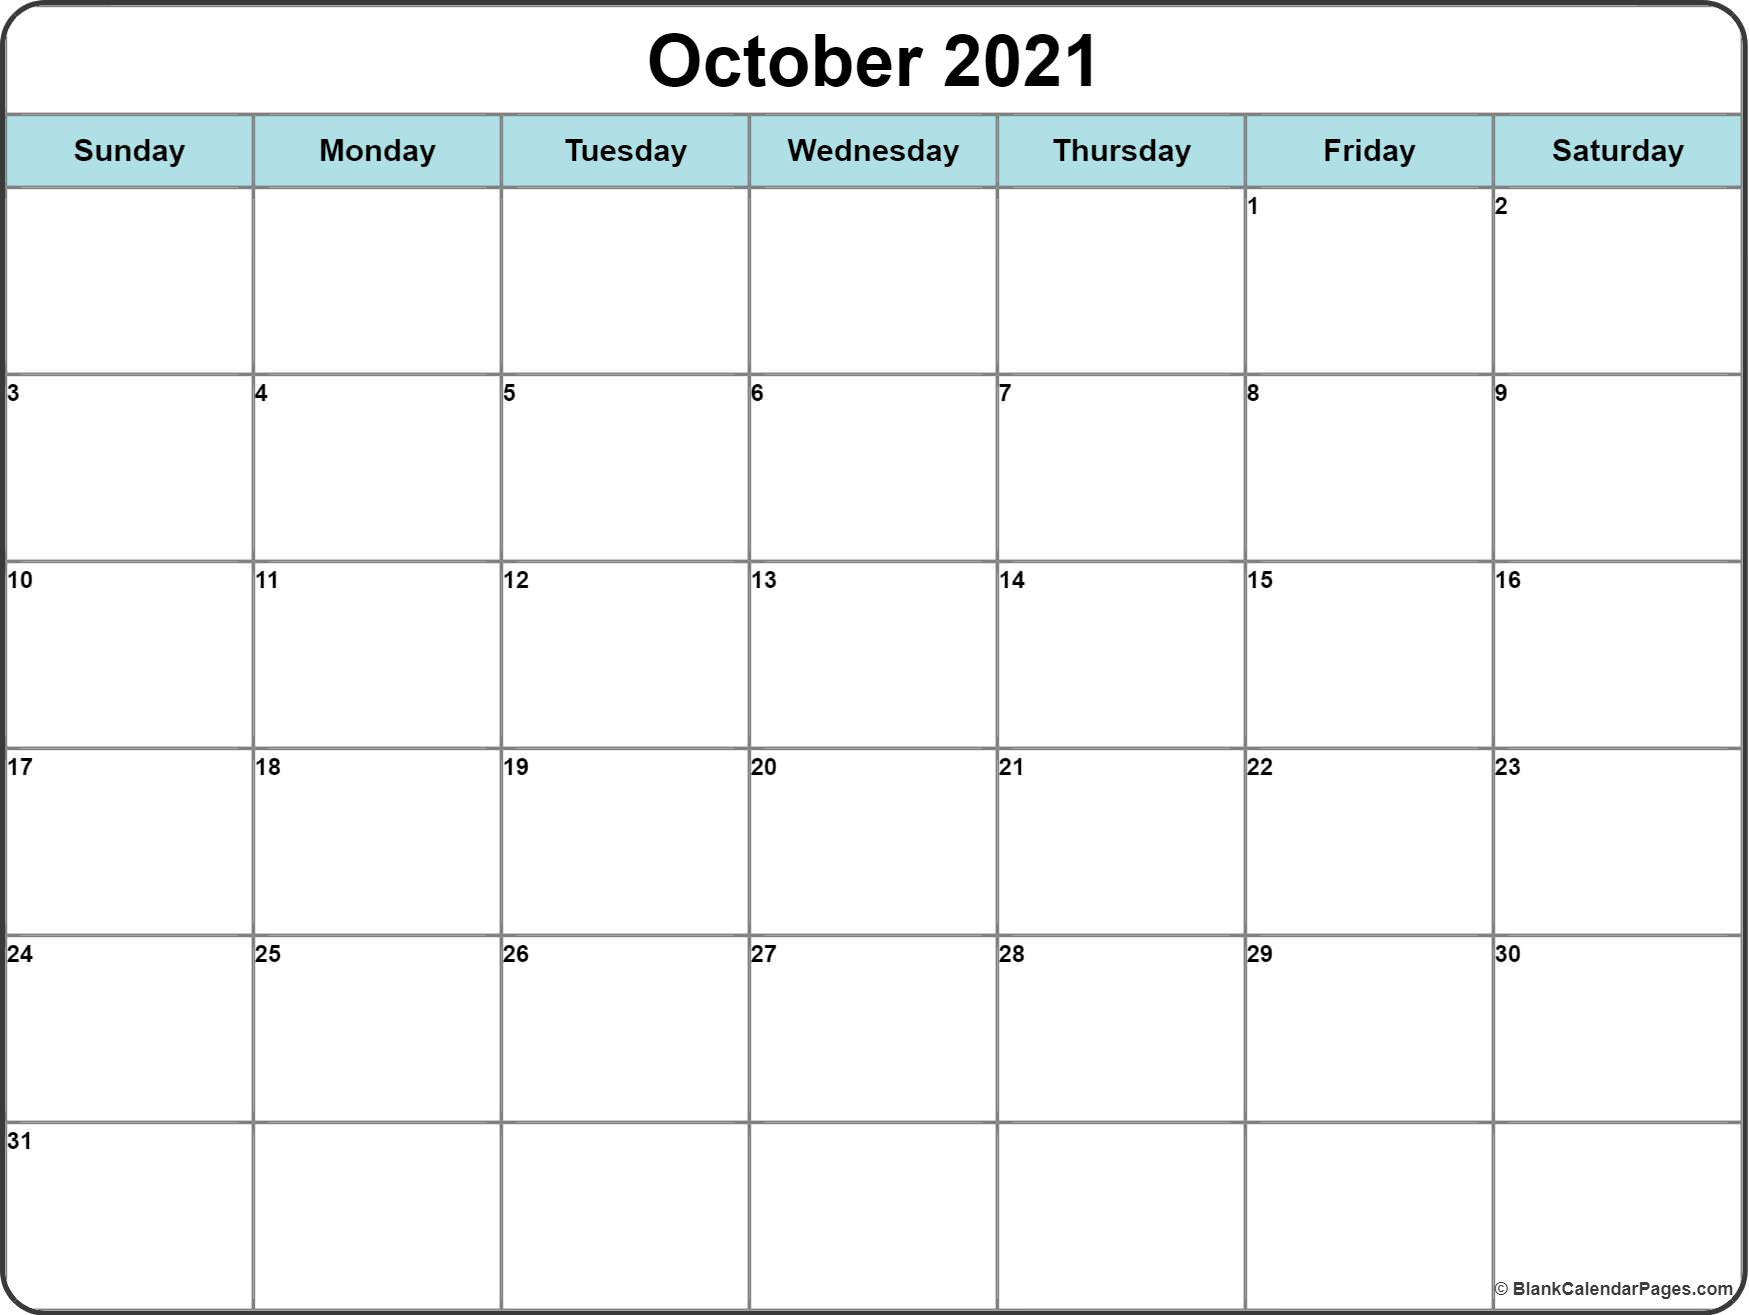 October 2019 calendar * 50+ templates of printable calendars